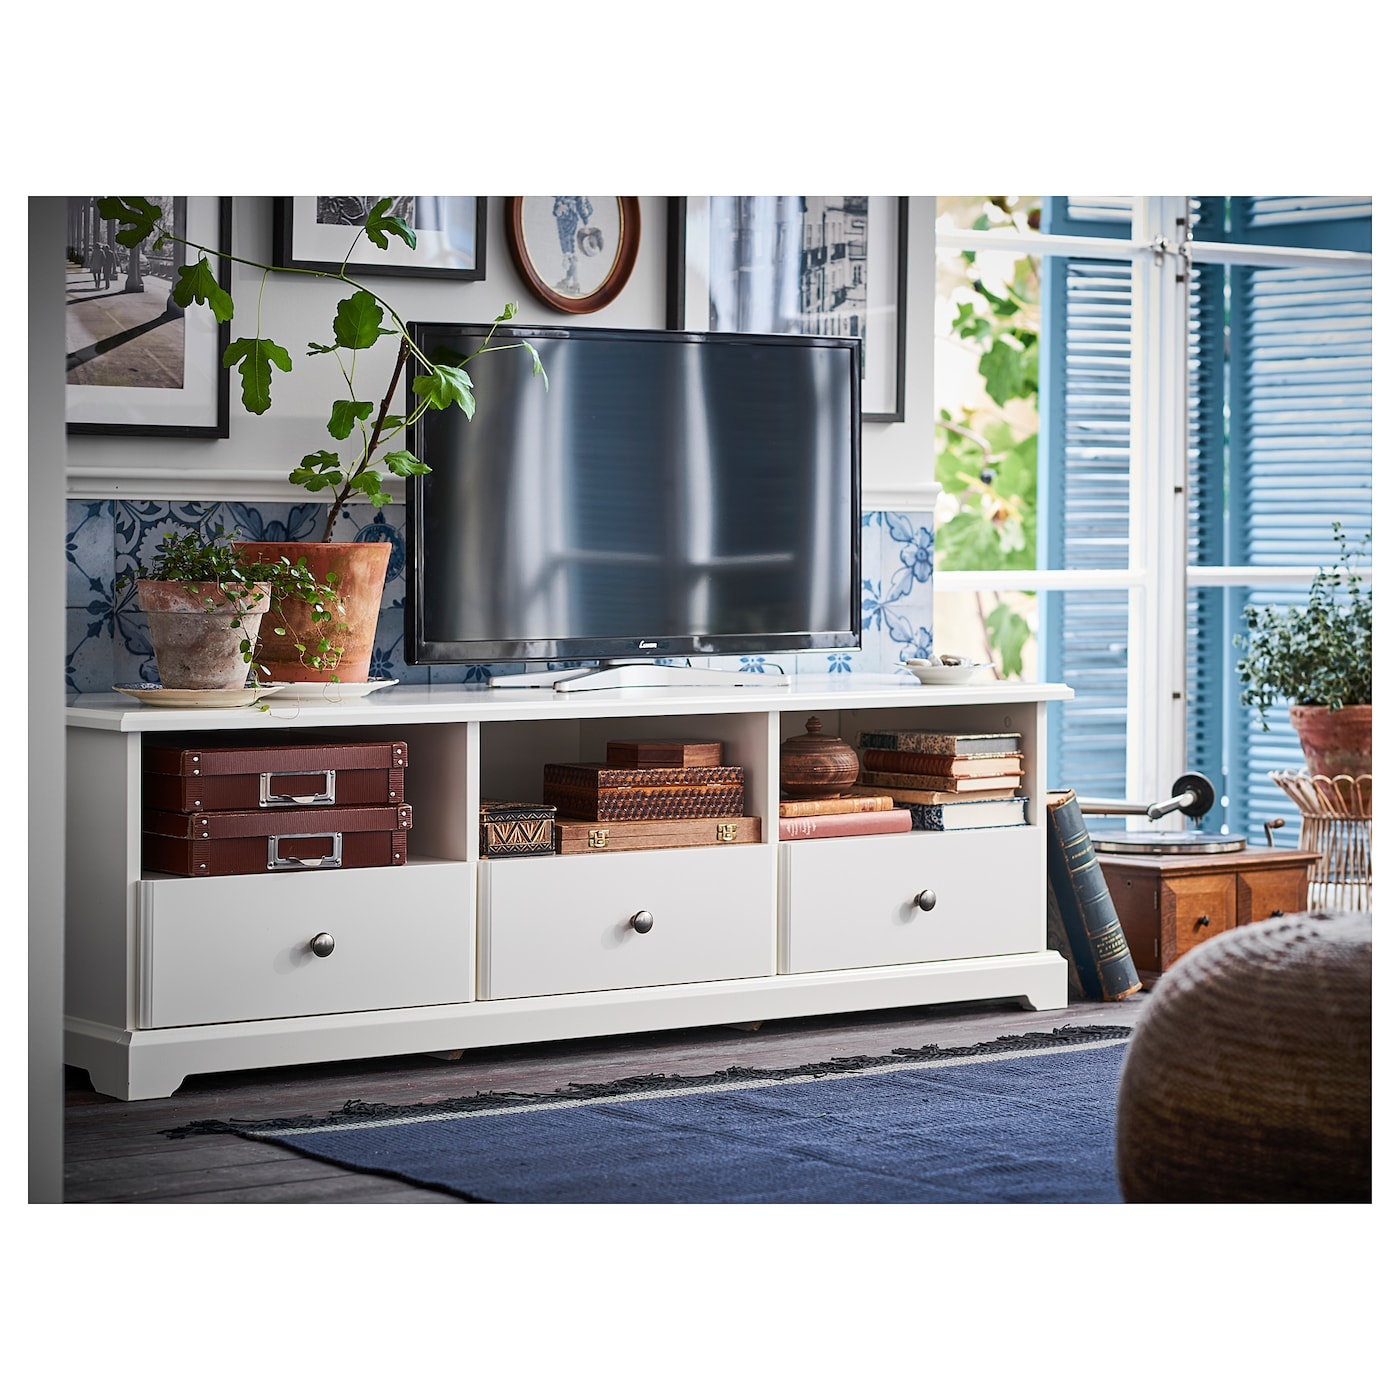 Tv Kast Meubel Ikea.Liatorp Tv Unit White 57 1 8x19 1 4x17 3 4 Ikea